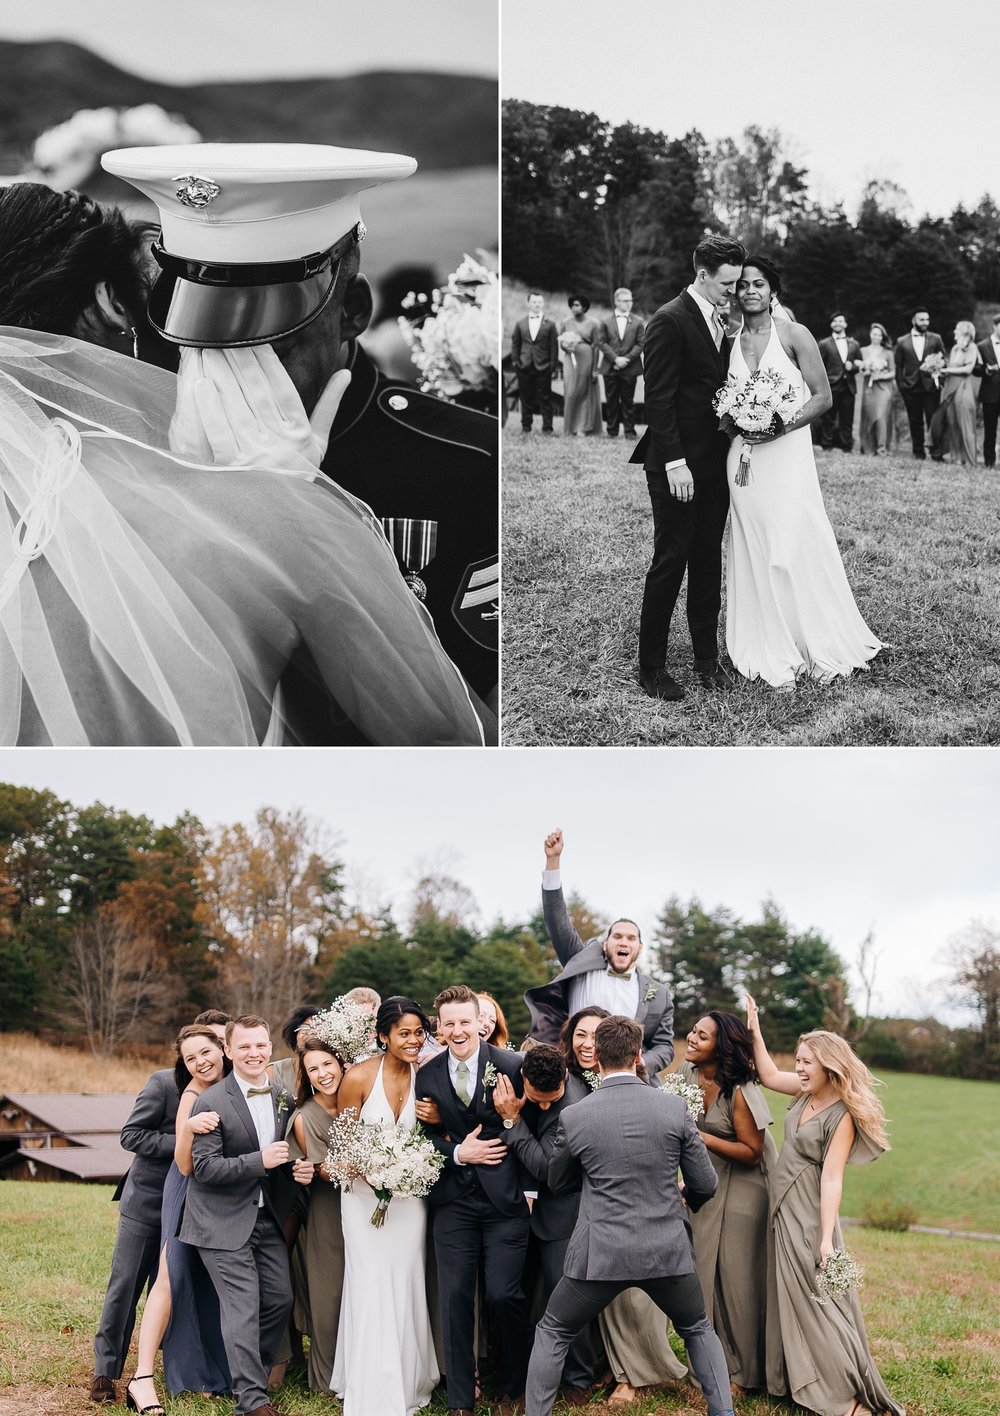 wisteria_ridge_mountain_fall_wedding_ivory_gray_elegance_jonathan_hannah_photography_12.jpg